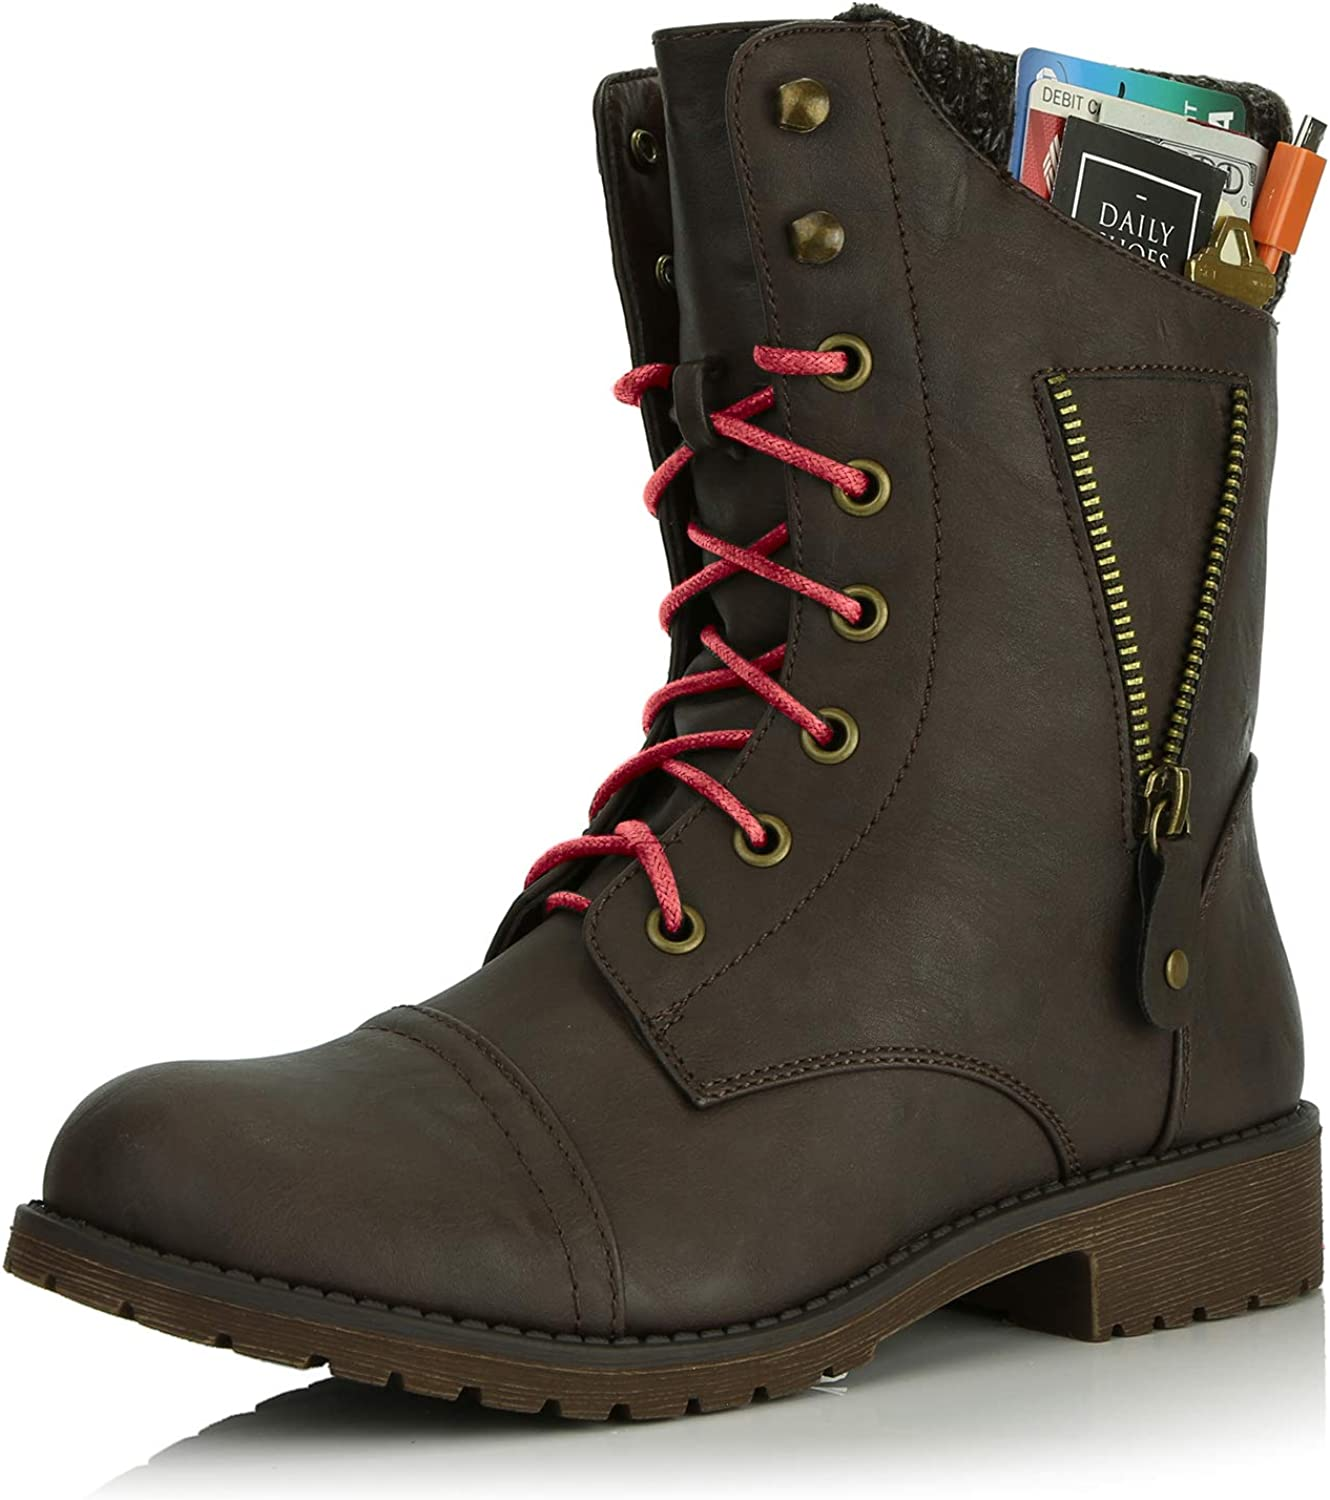 DailyShoes Women's Military Lace Up Buckle Combat Boots Zipper Sweater Ankle High Exclusive Credit Card Pocket, Red